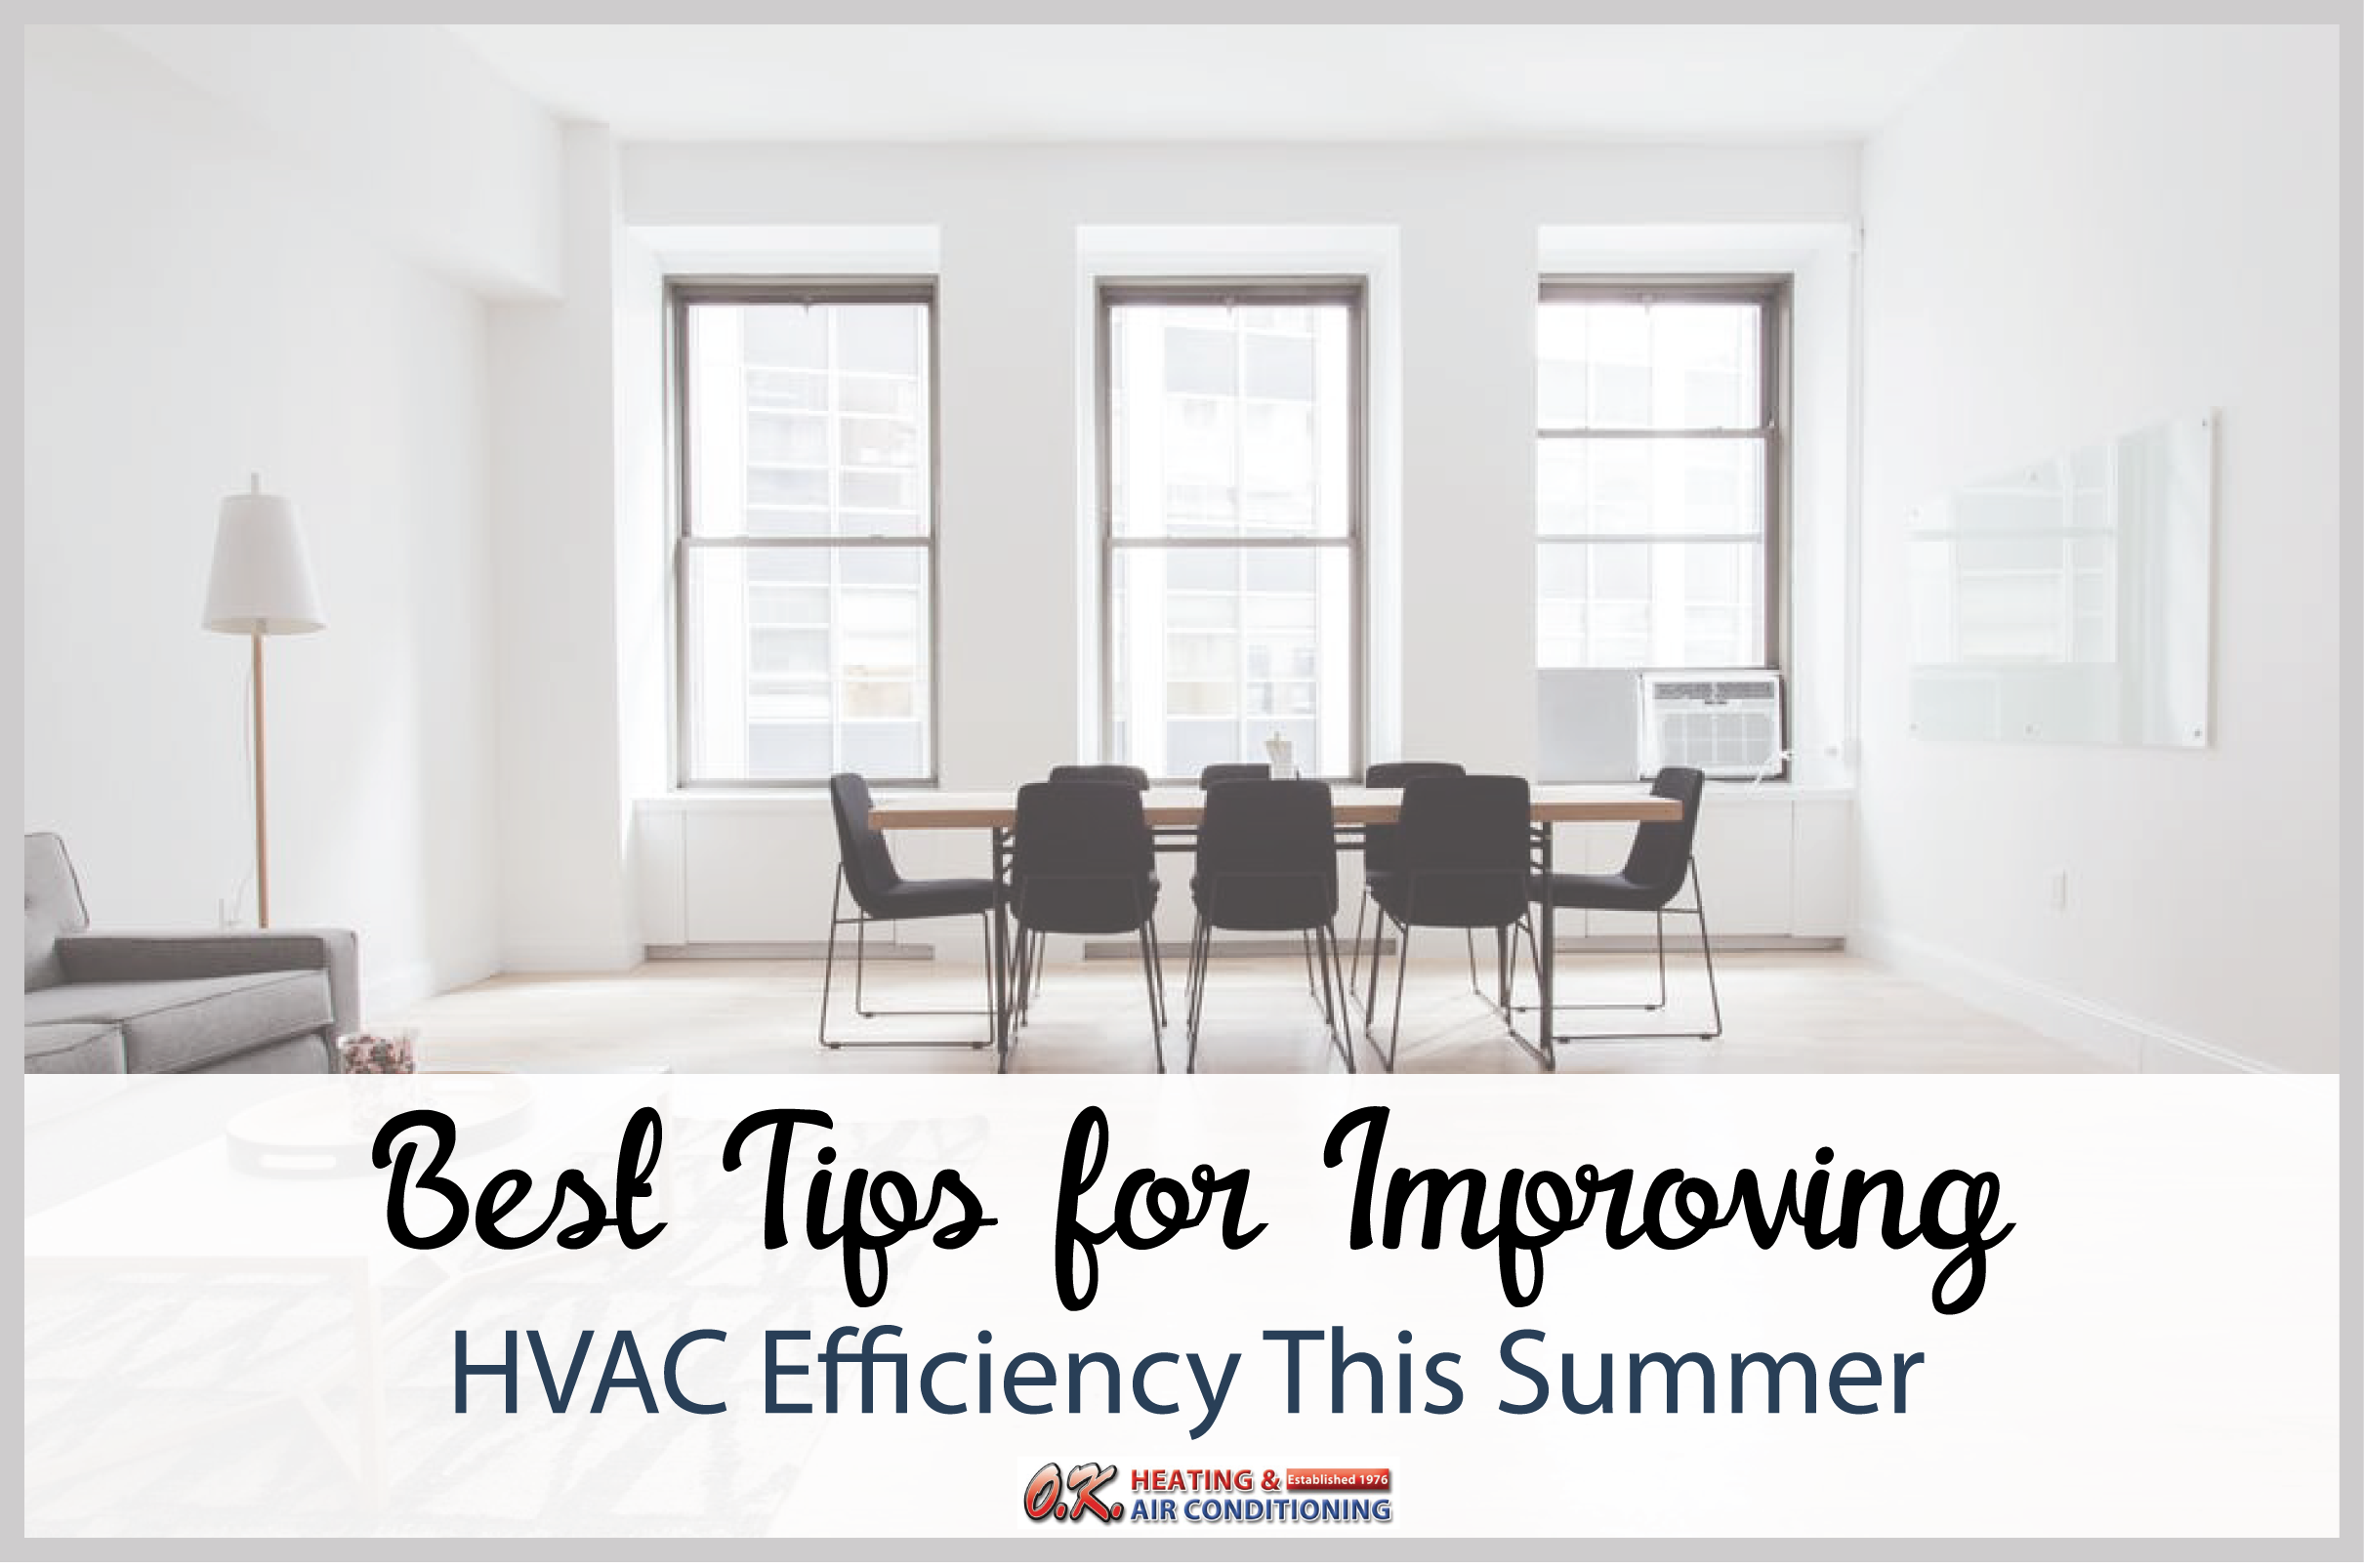 Improve HVAC efficiency